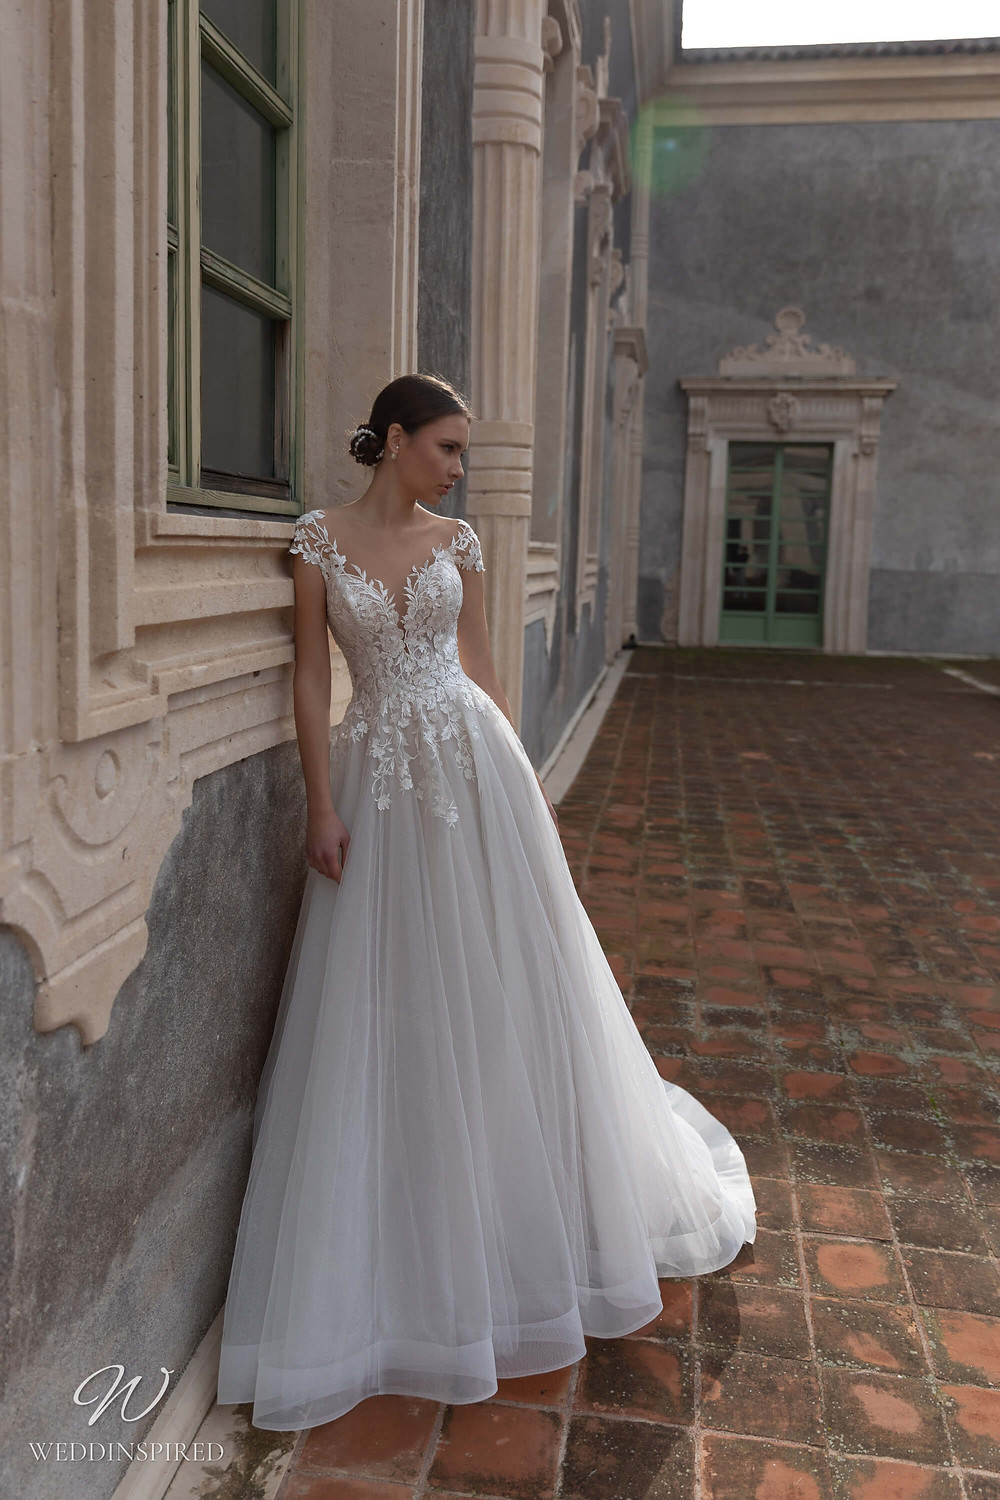 A Naviblue lace and tulle off the shoulder A-line wedding dress